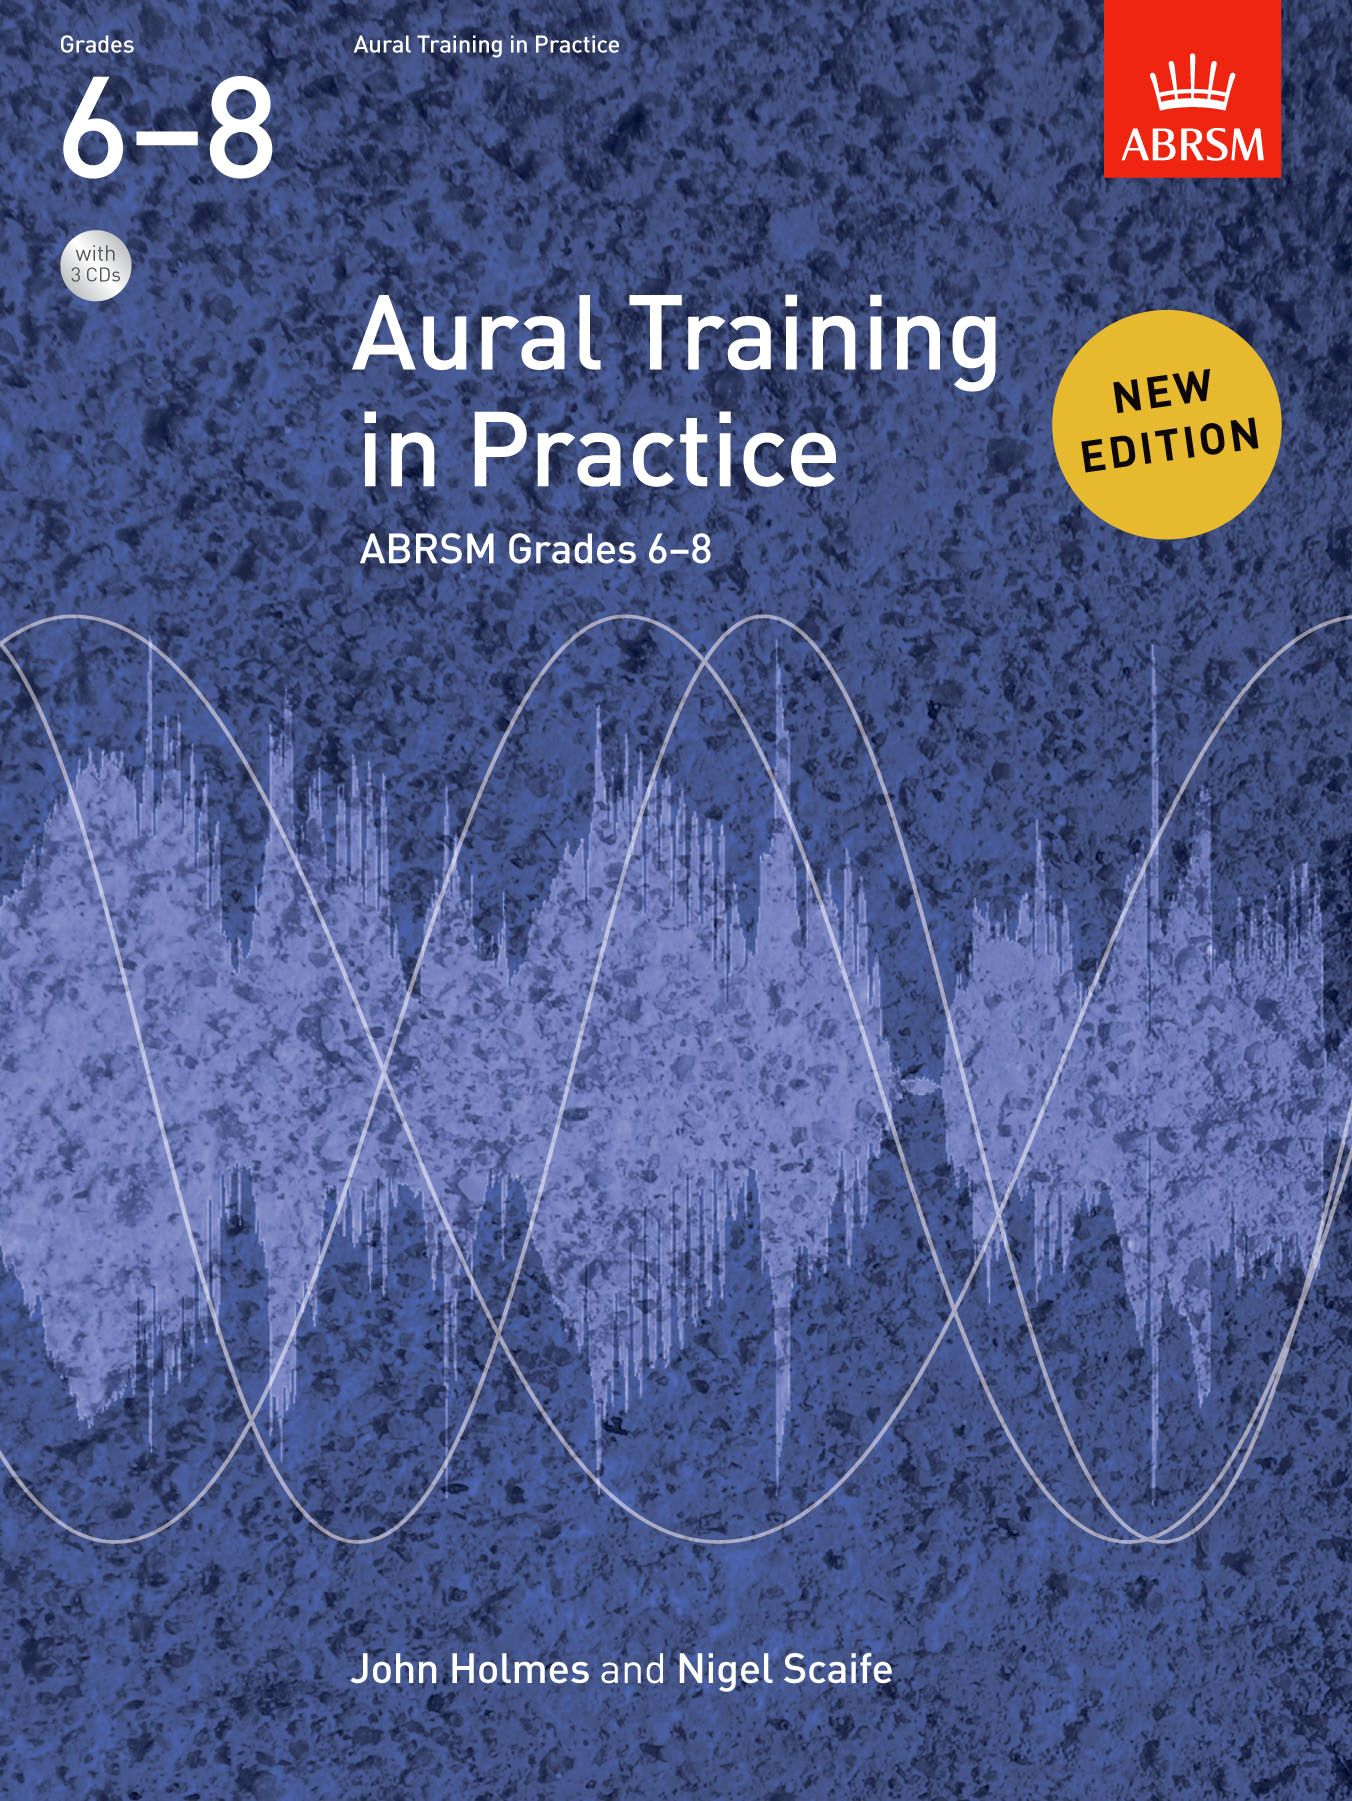 Aural Training in Practice, Grades 6-8 with 3 CDs